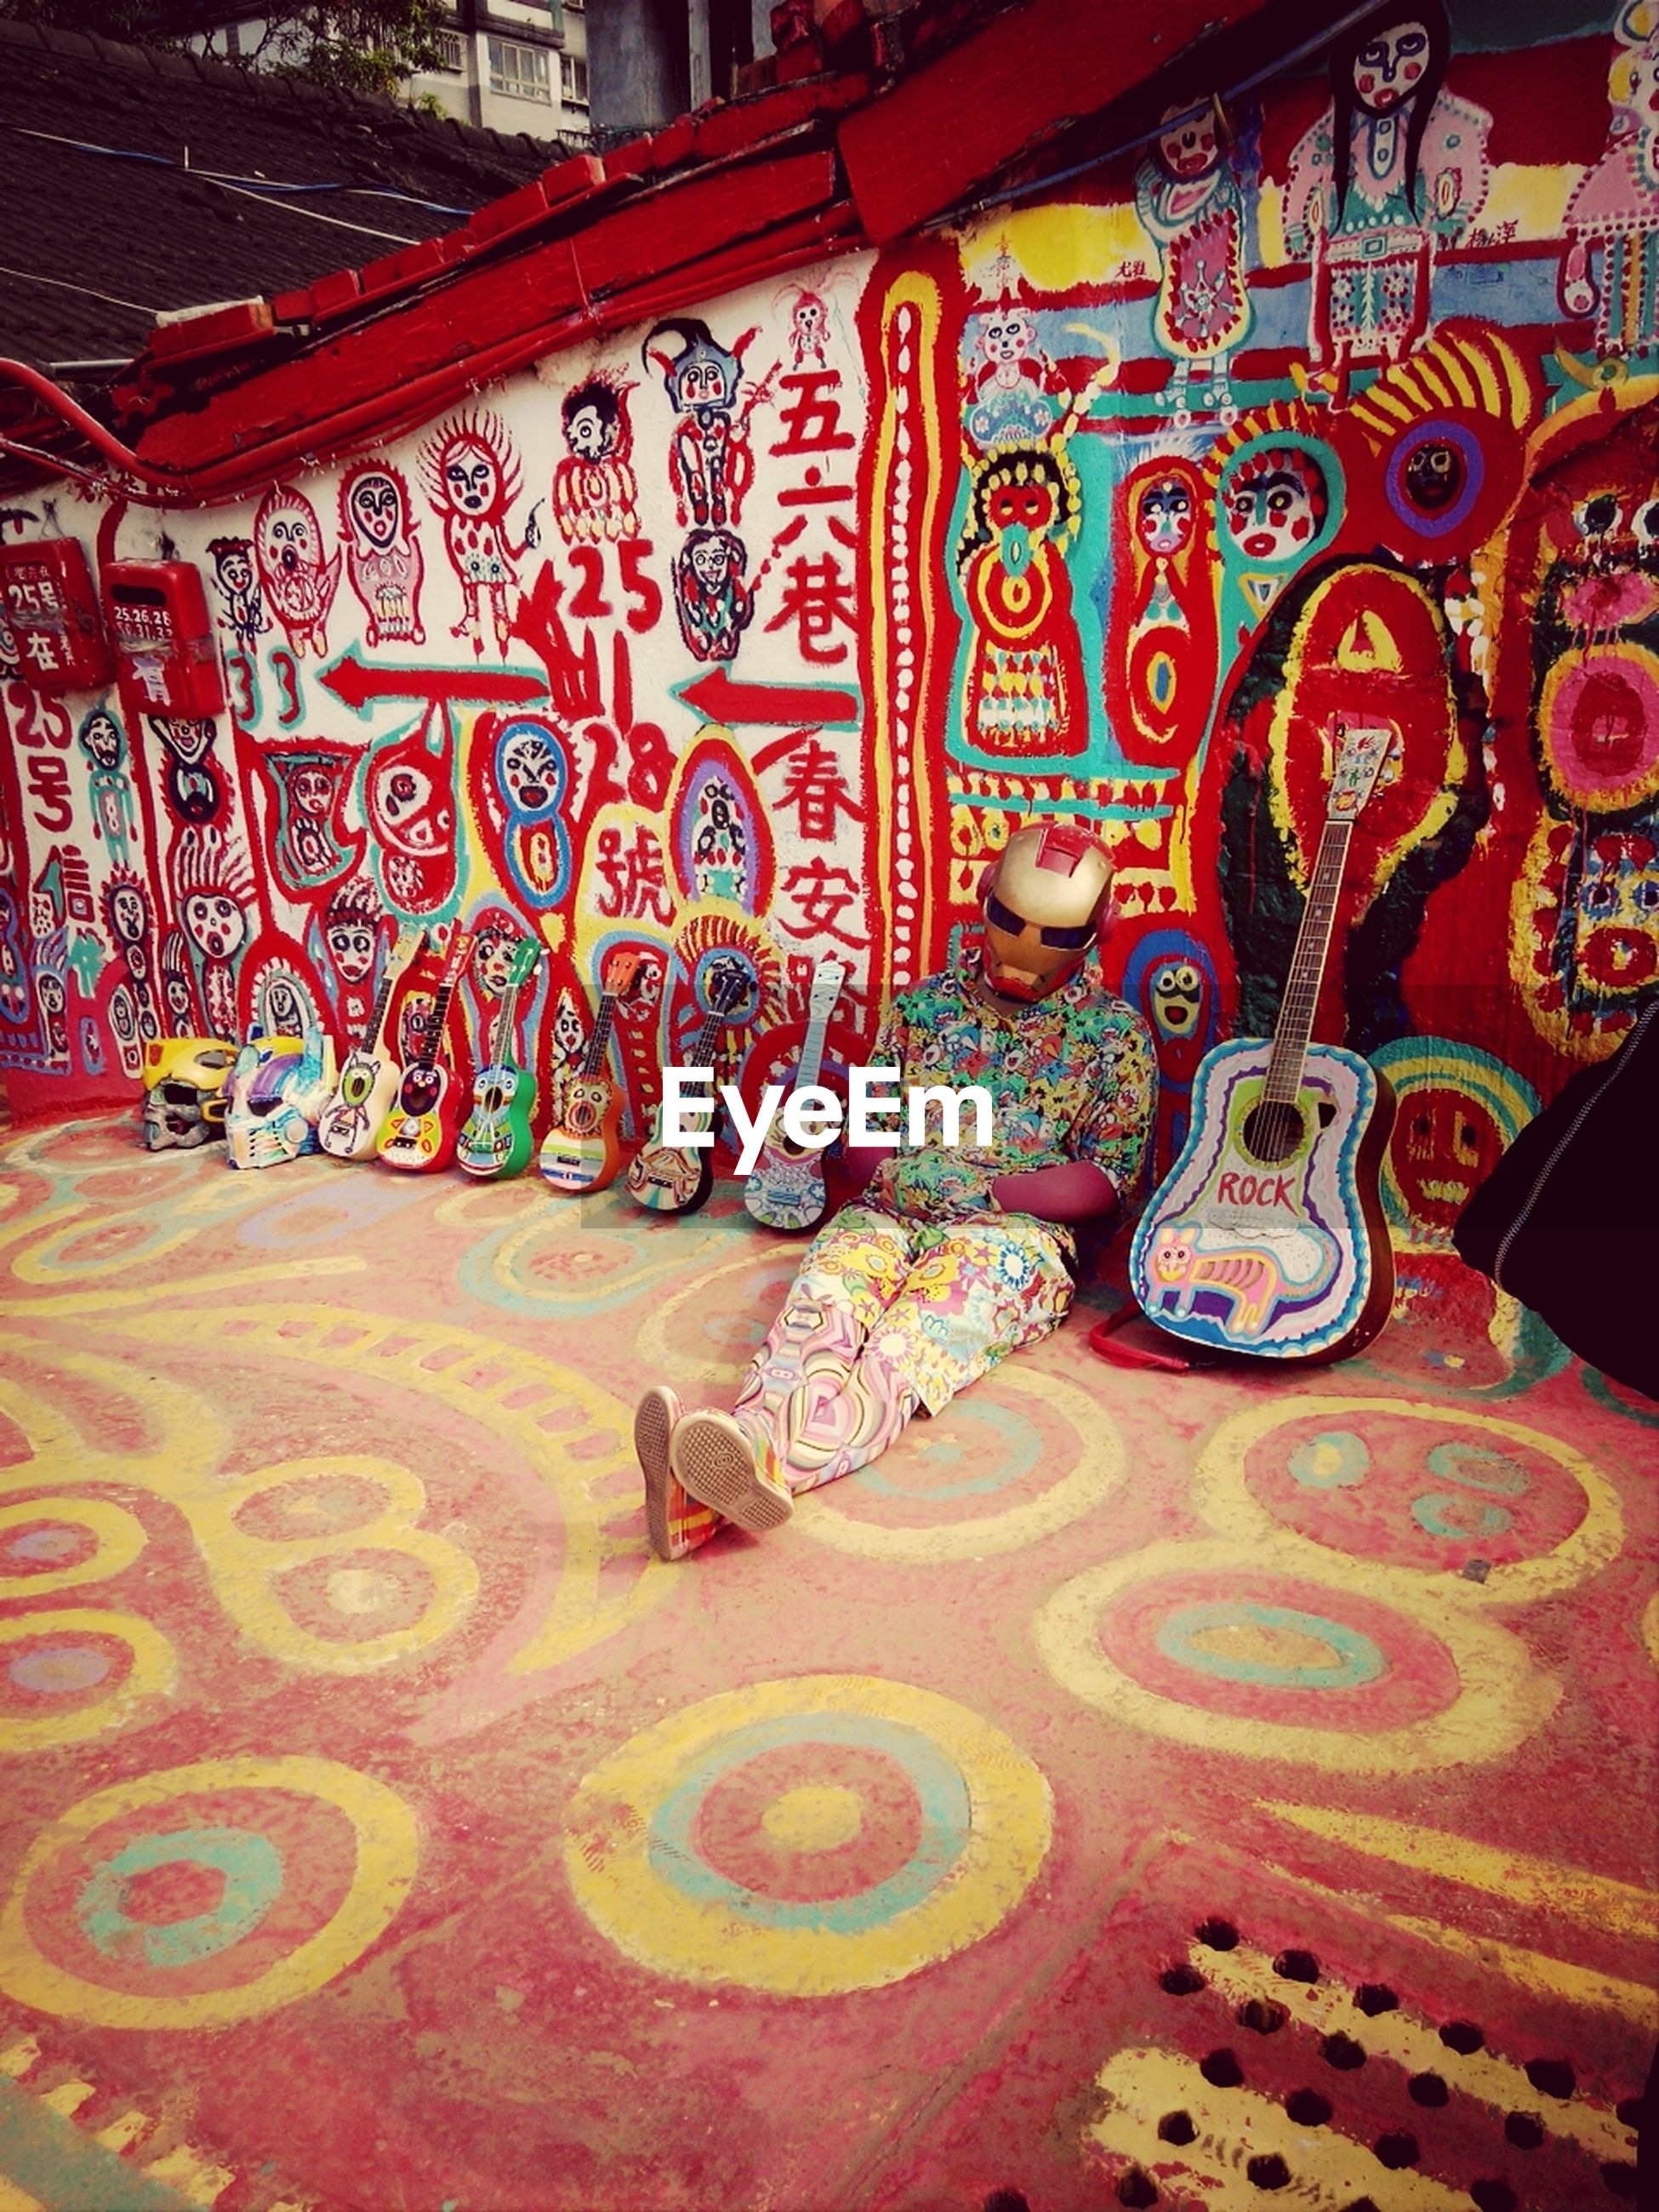 indoors, art and craft, art, creativity, design, multi colored, pattern, floral pattern, ornate, decoration, no people, tradition, red, wall - building feature, animal representation, human representation, built structure, architecture, variation, cultures